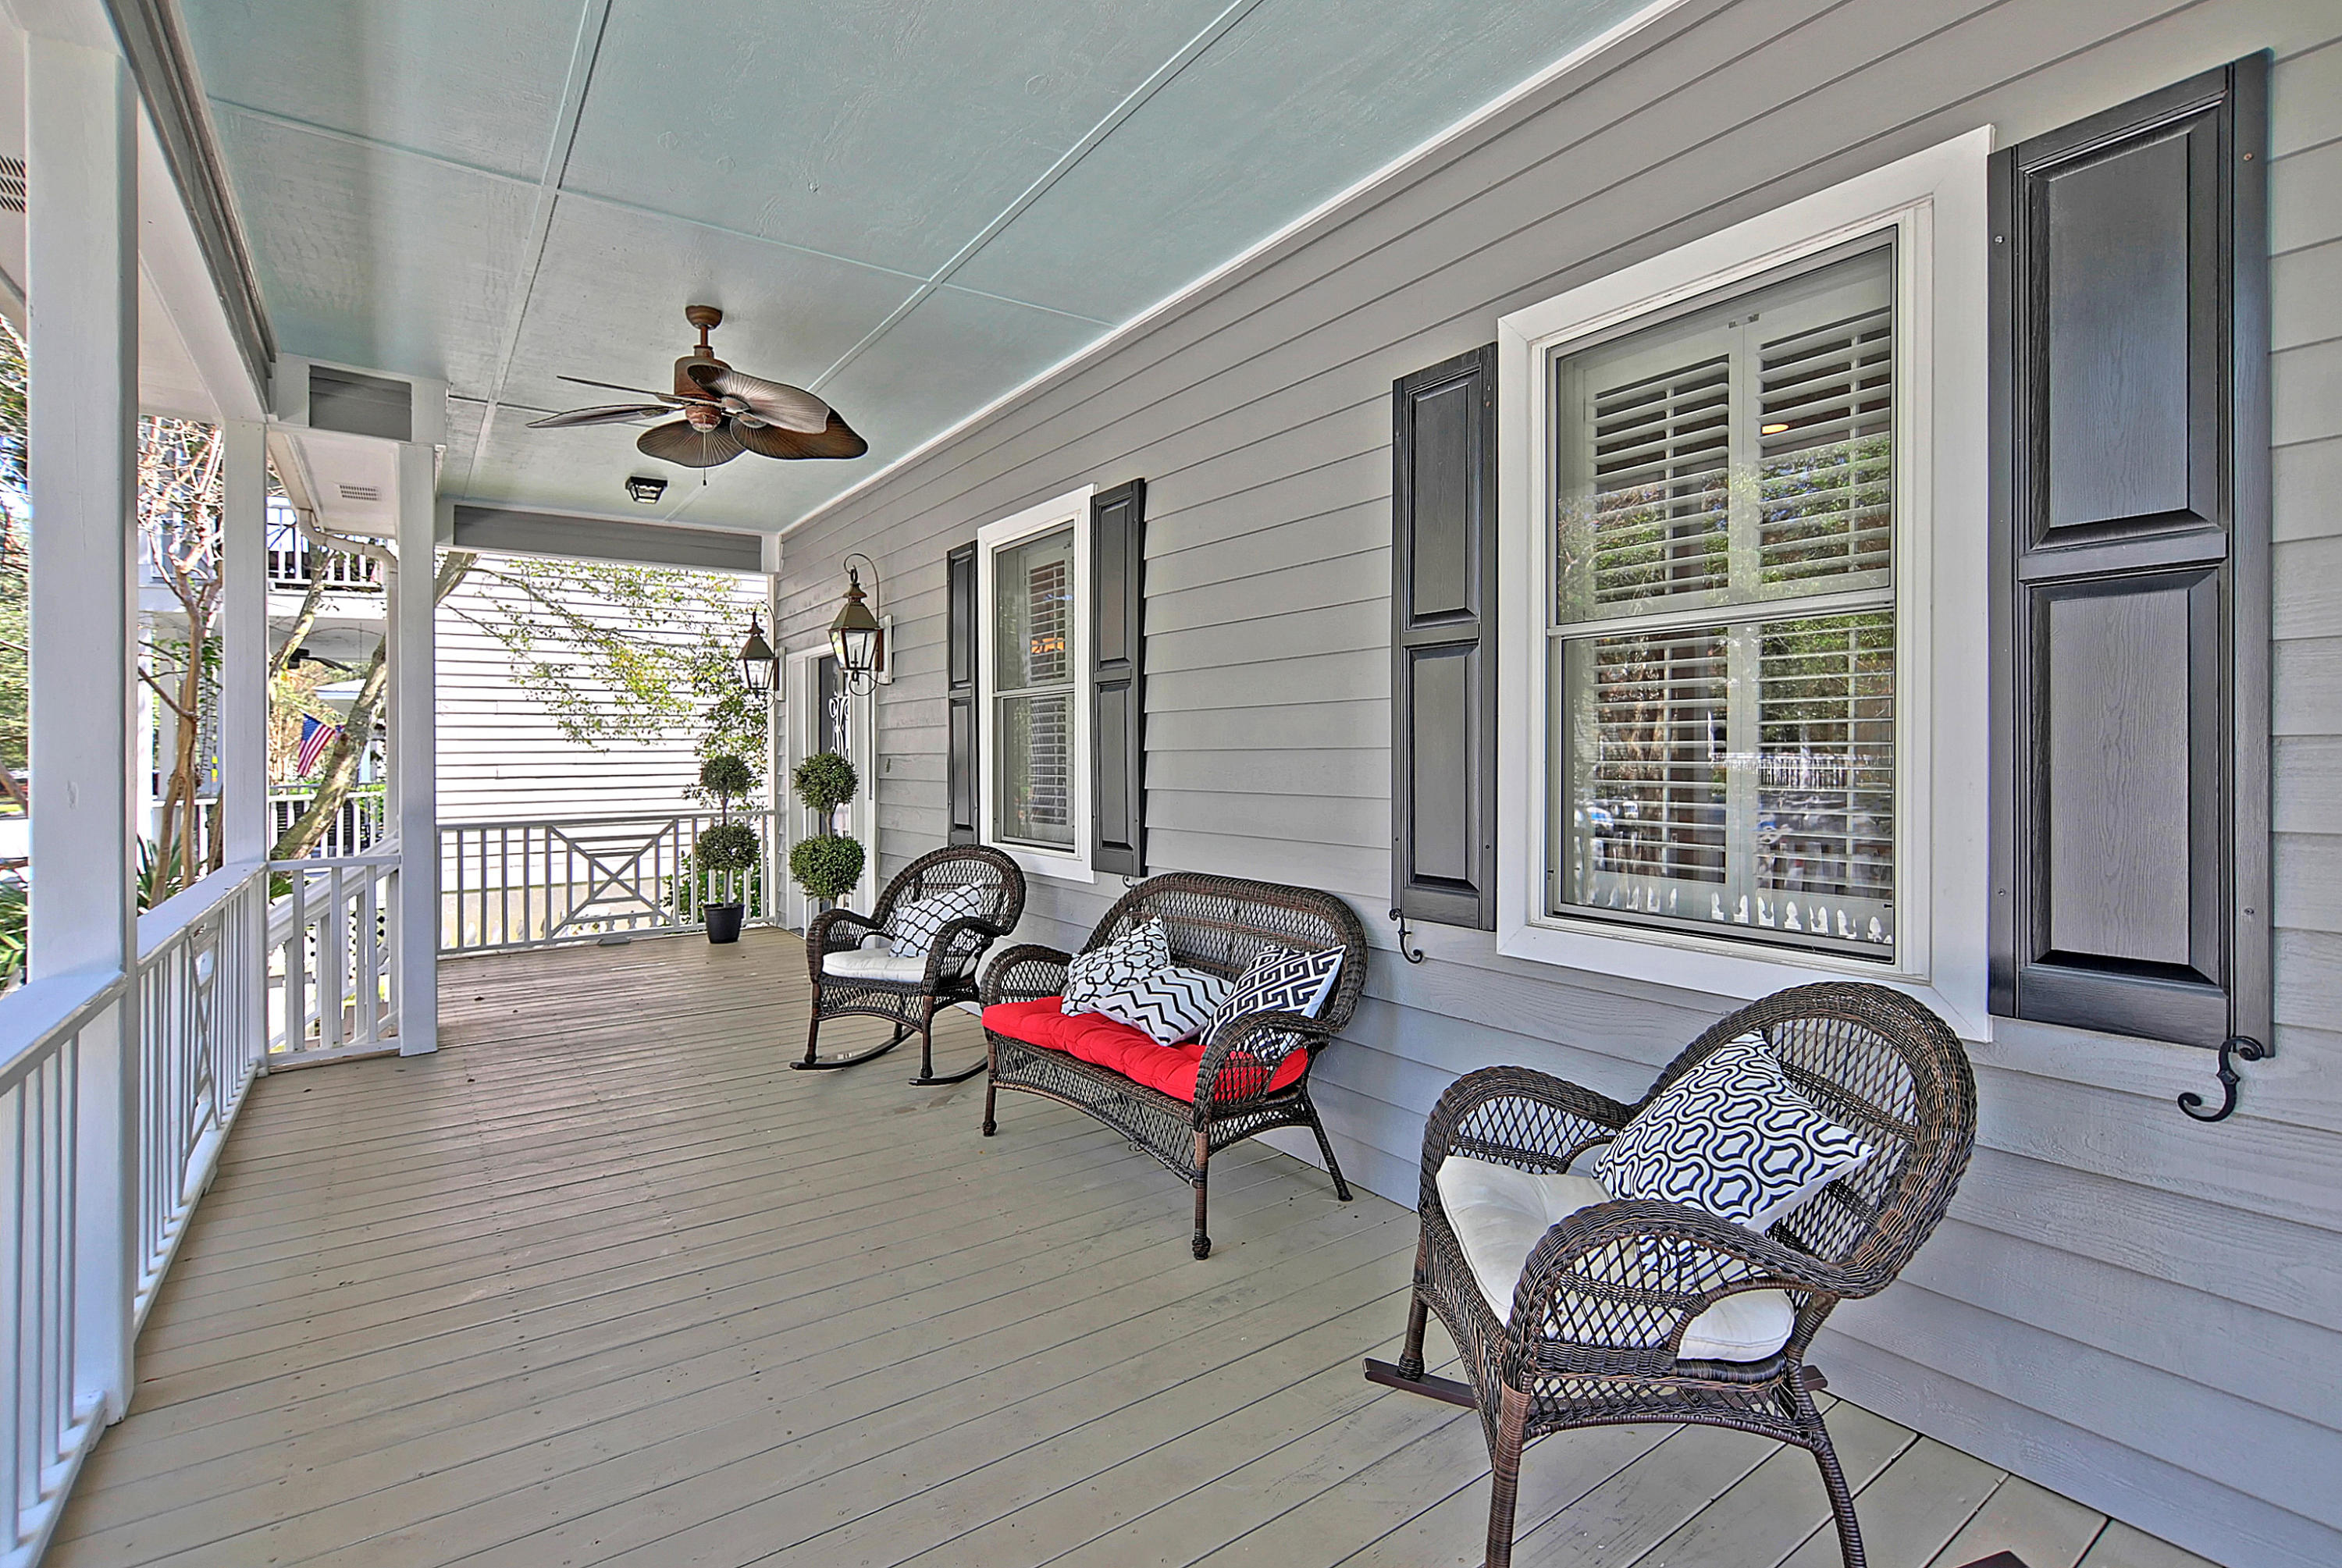 Rivertowne On The Wando Homes For Sale - 2520 Rivertowne, Mount Pleasant, SC - 35